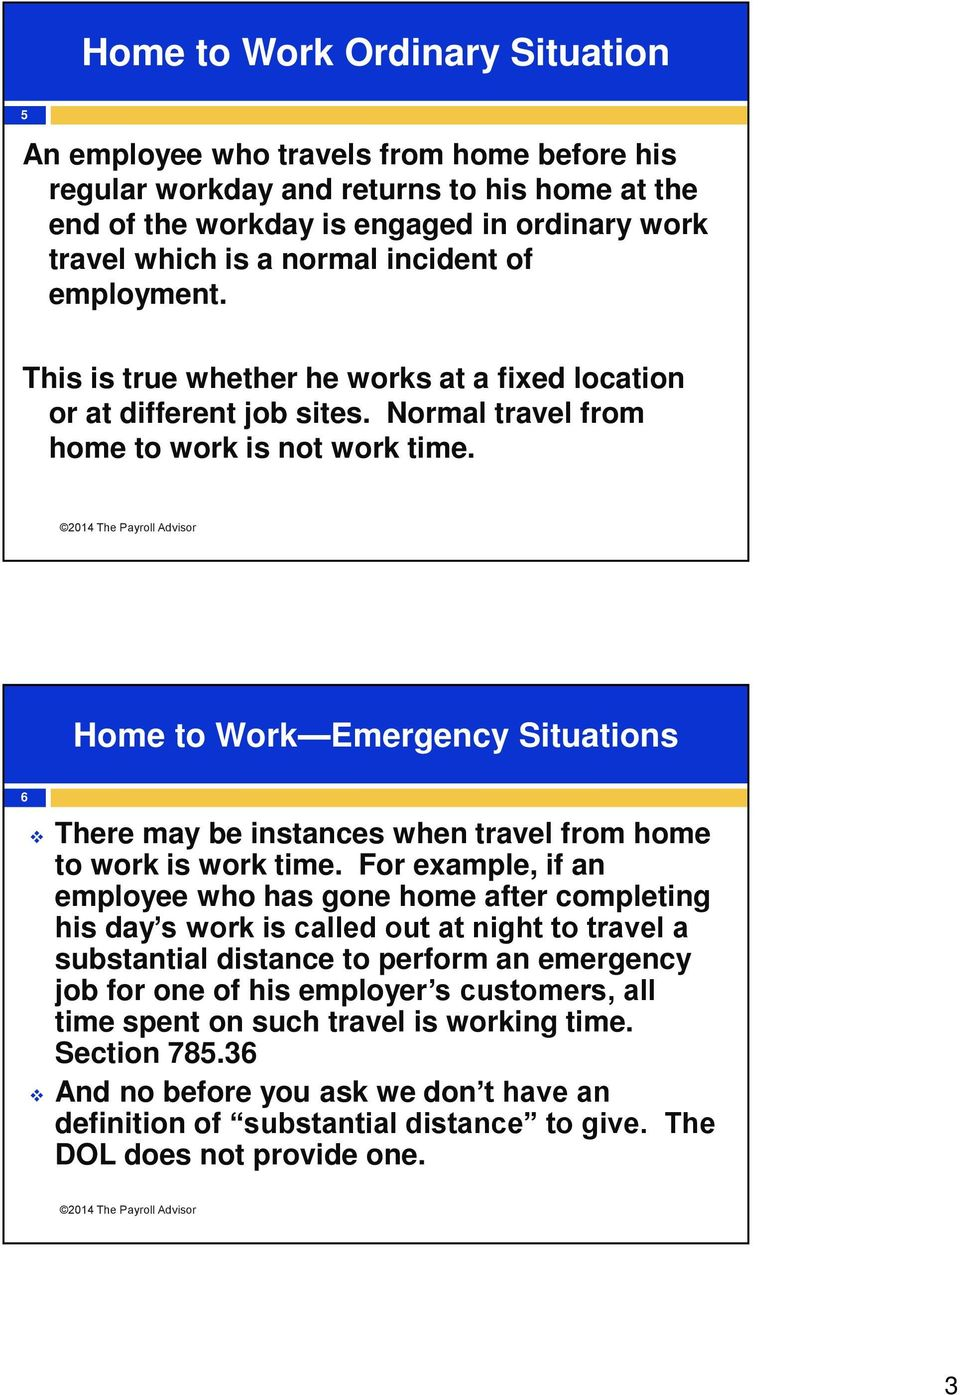 6 Home to Work Emergency Situations There may be instances when travel from home to work is work time.